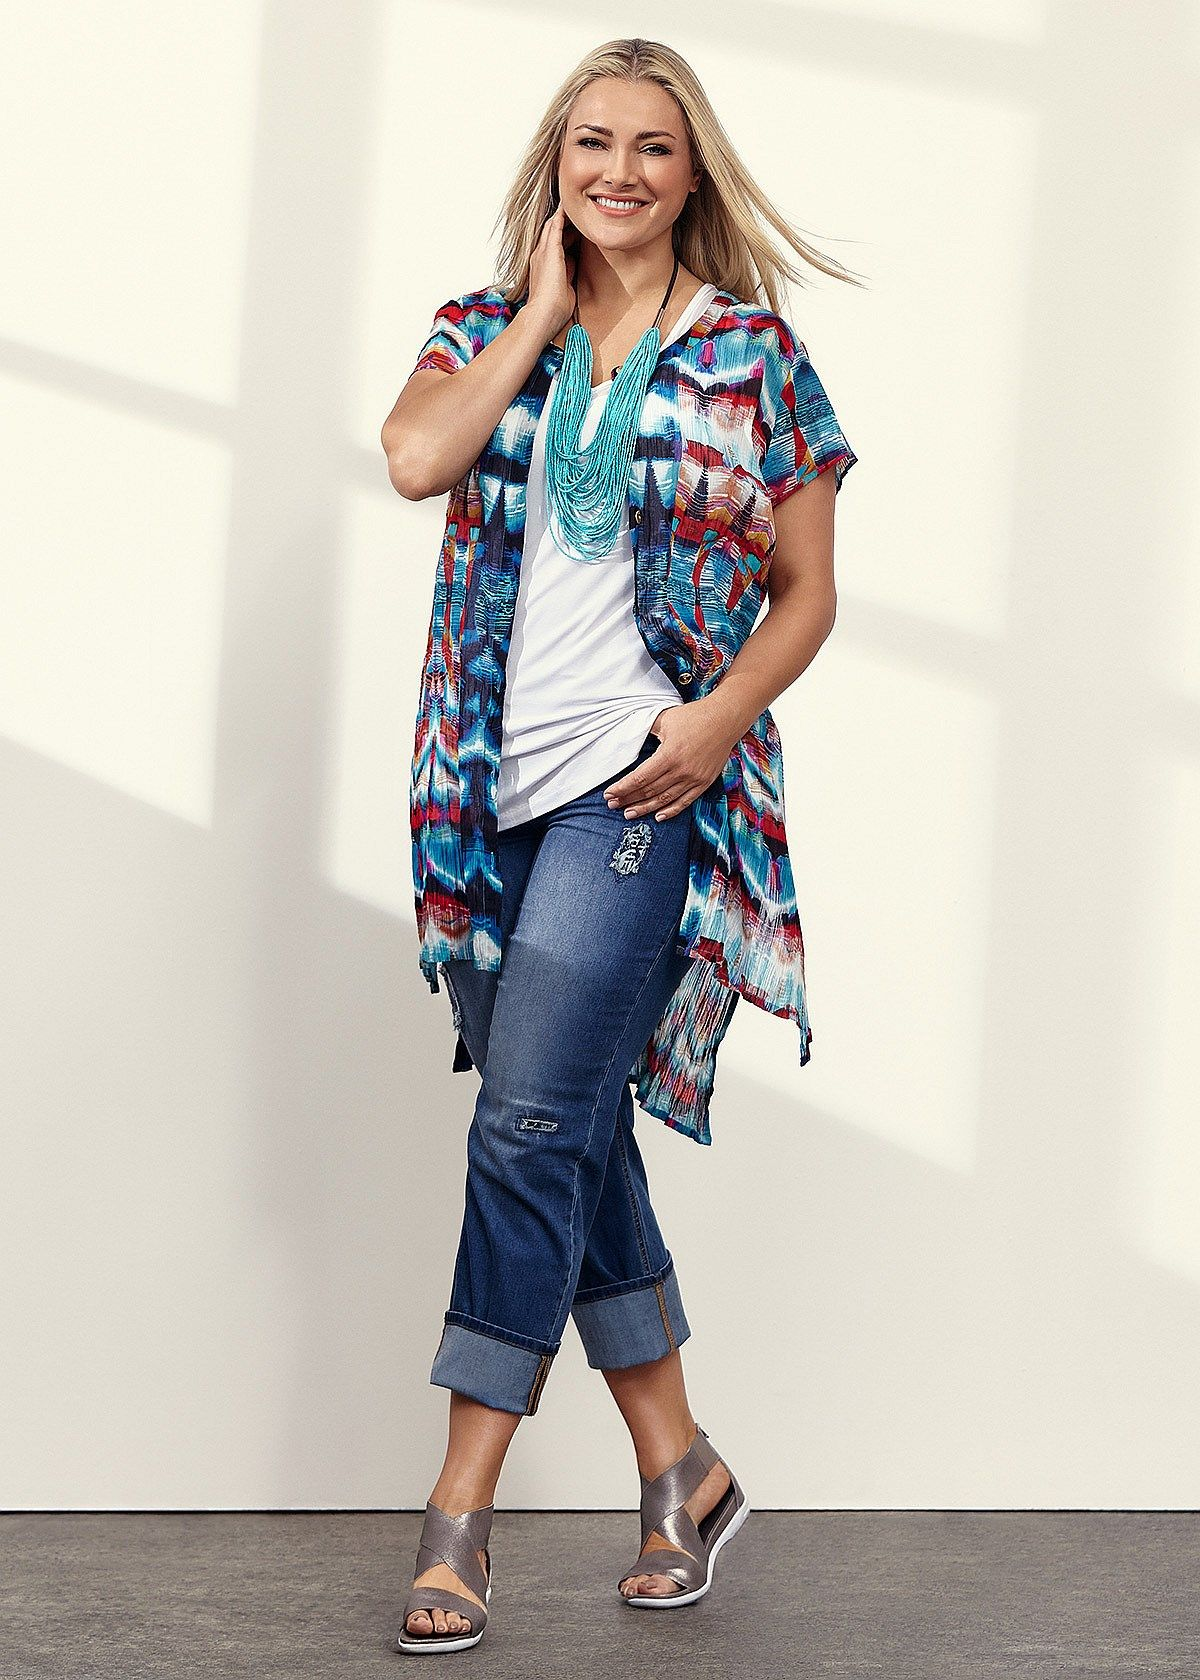 Plus Size women\u0027s Clothing, Large Size Fashion Clothes for WOMEN in  Australia , MARGARITA SHIRT , TS14